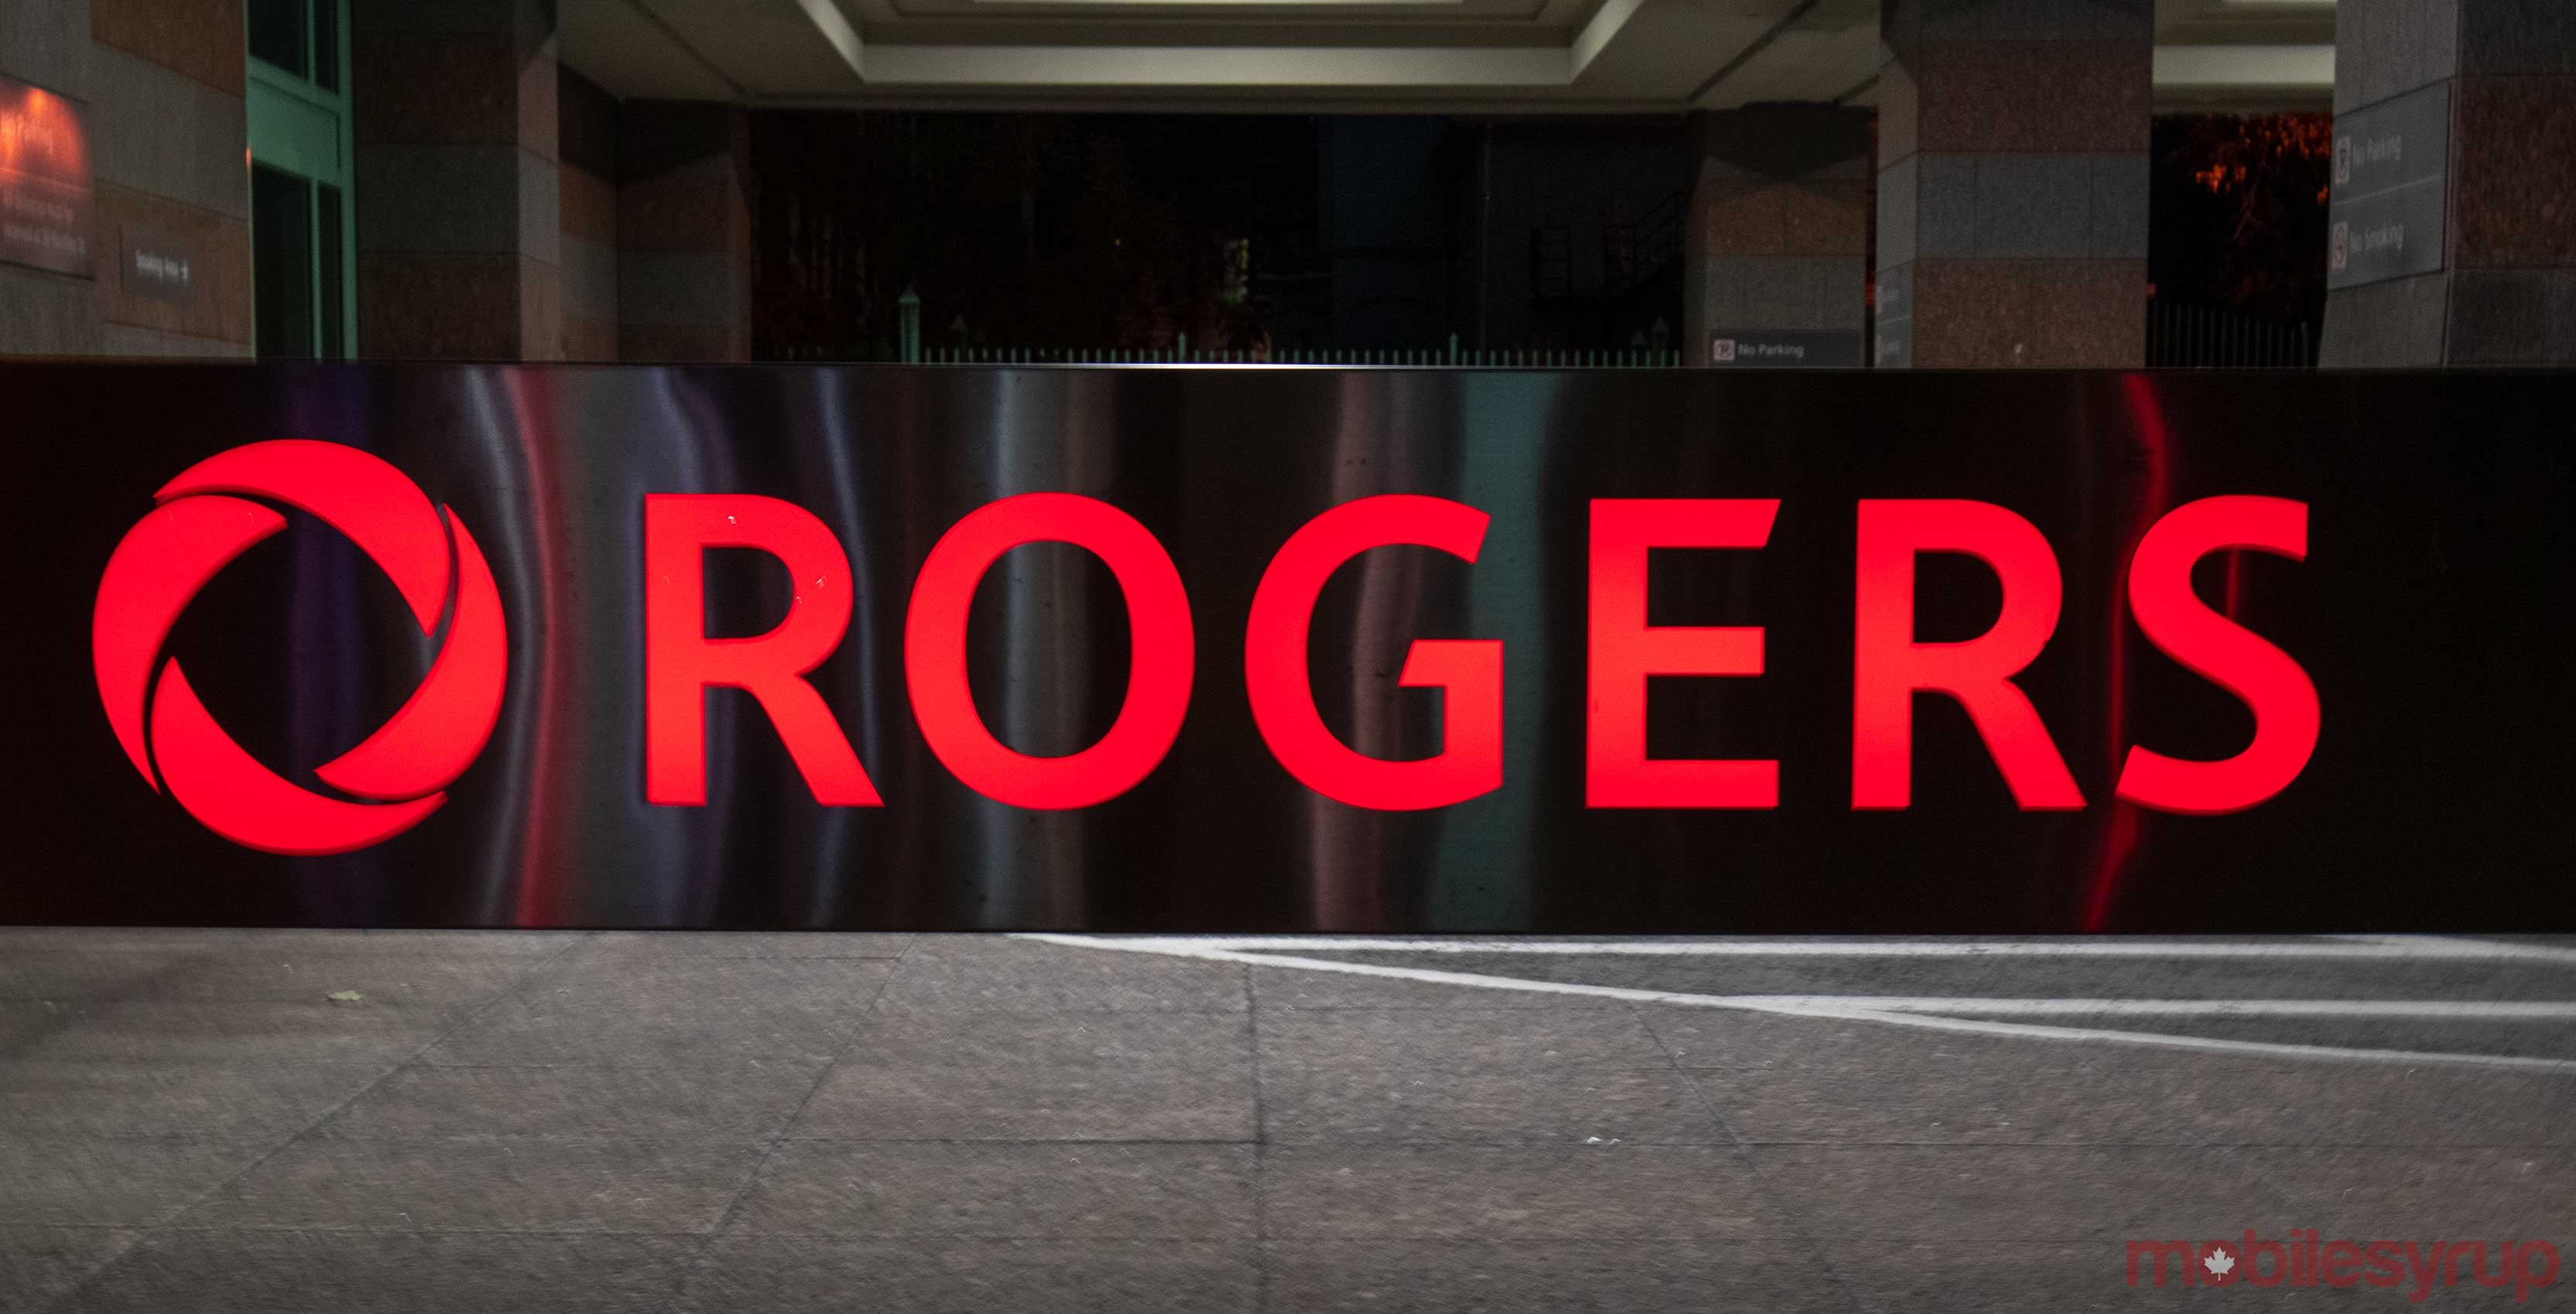 Small Ottawa town worried of health risks, pushing Rogers to